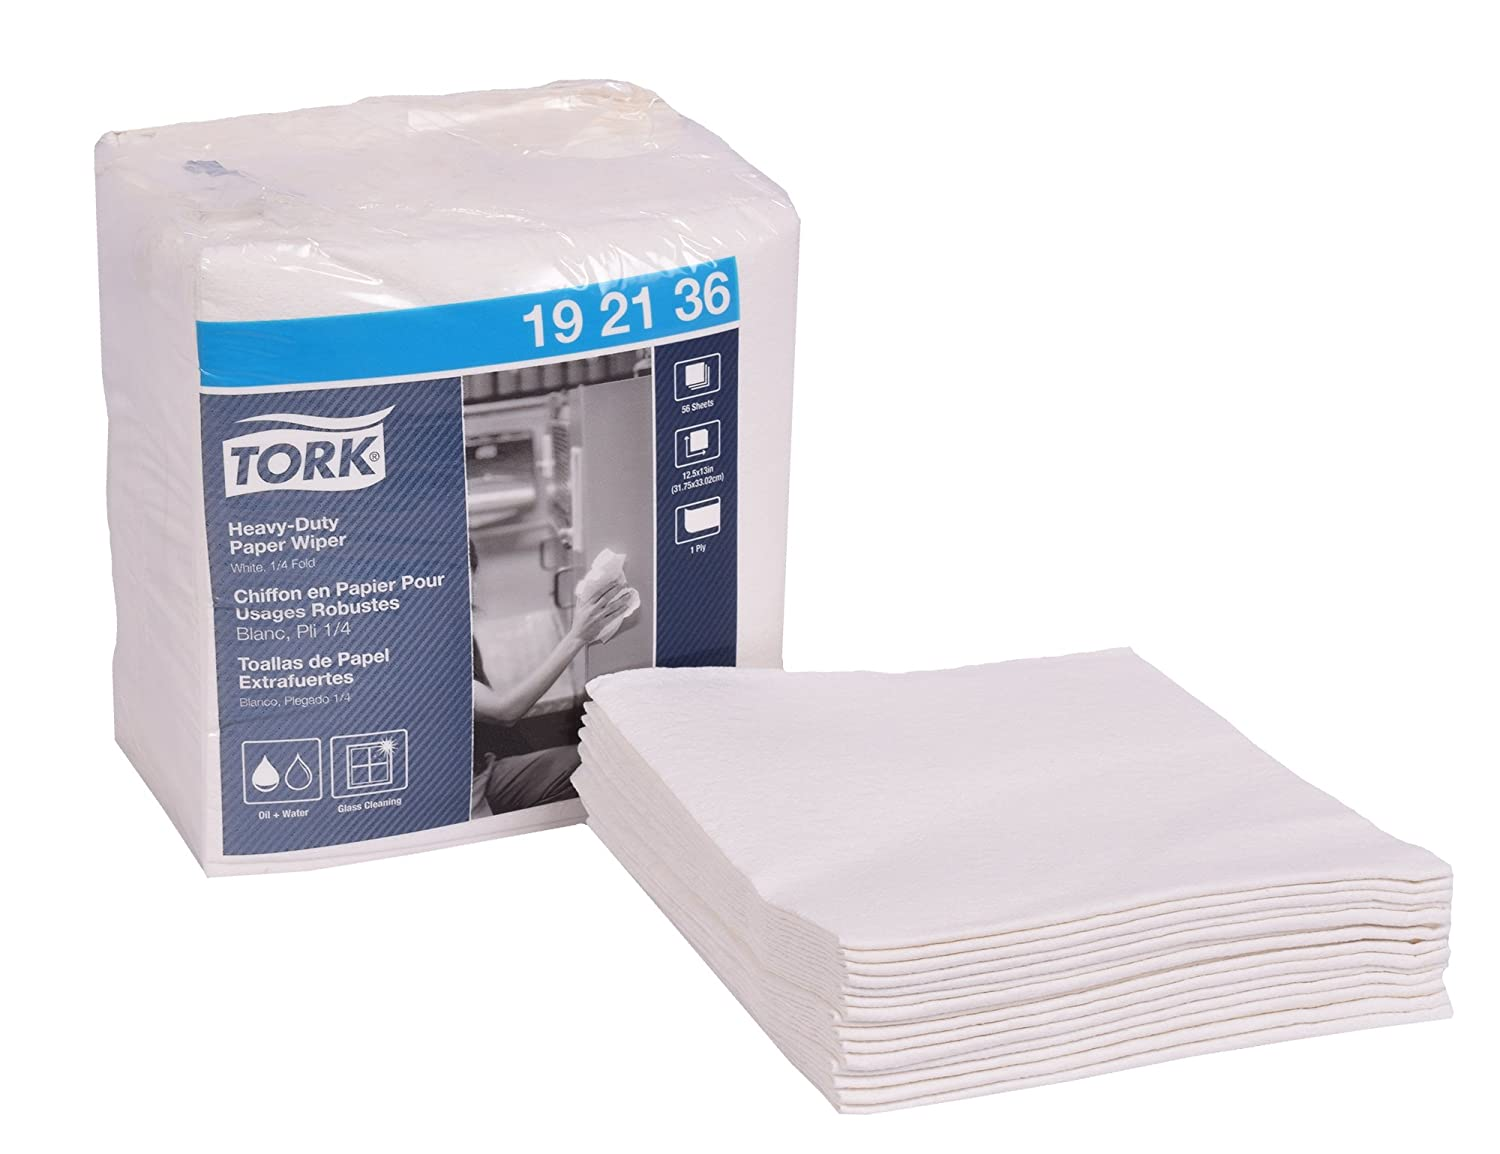 Tork 192136 Heavy-Duty Paper Wiper, 1/4 Fold, 1-Ply, 12.5